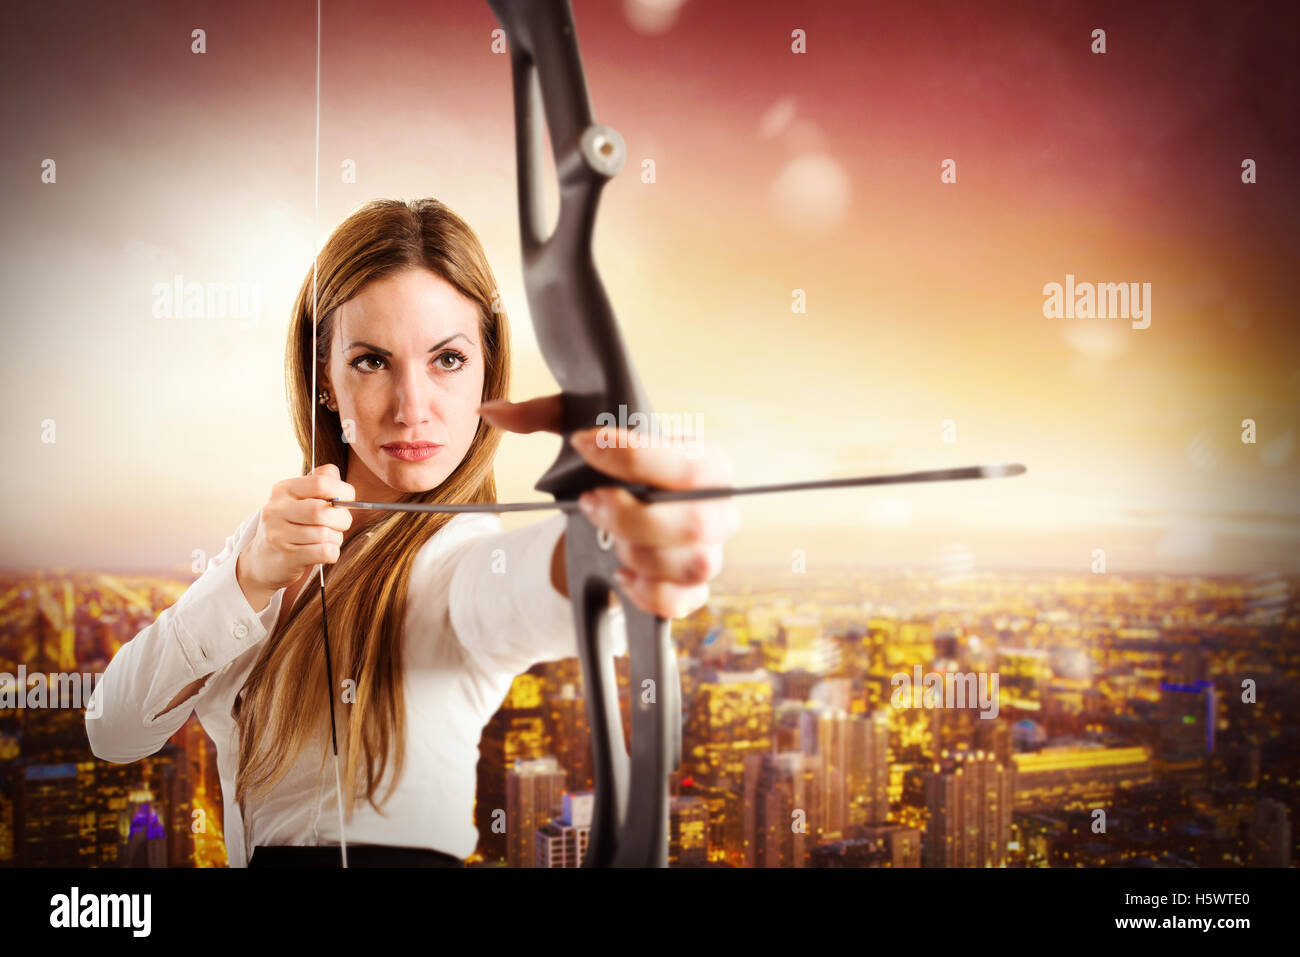 Point to success in business - Stock Image